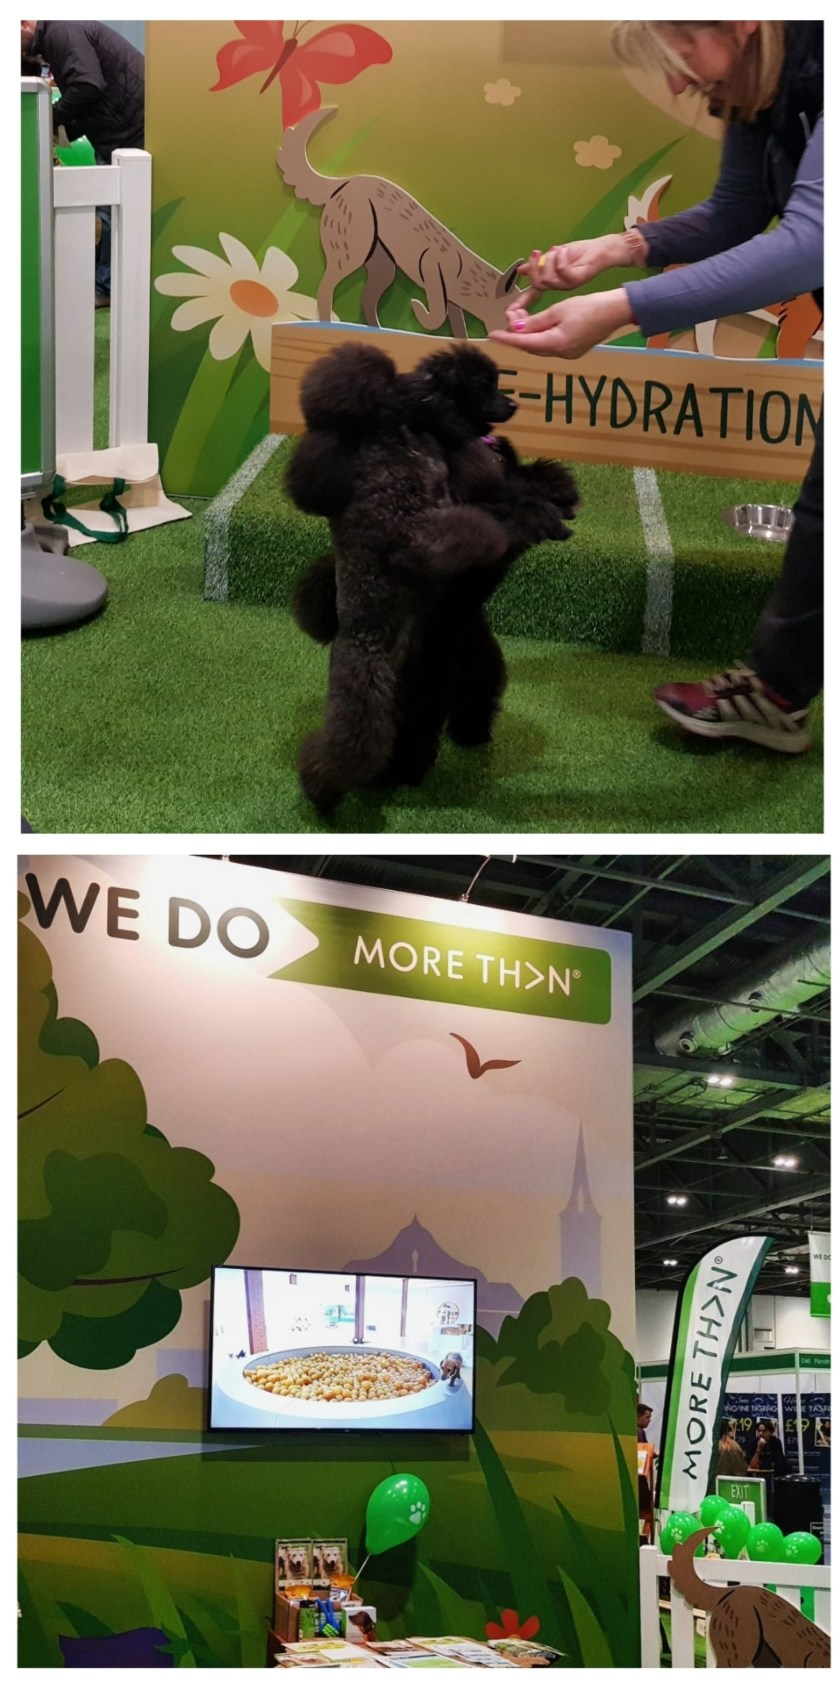 National Pet Show, More Than, Excel, London, days out, events, pets, family fun, animal lovers, freedom to learn